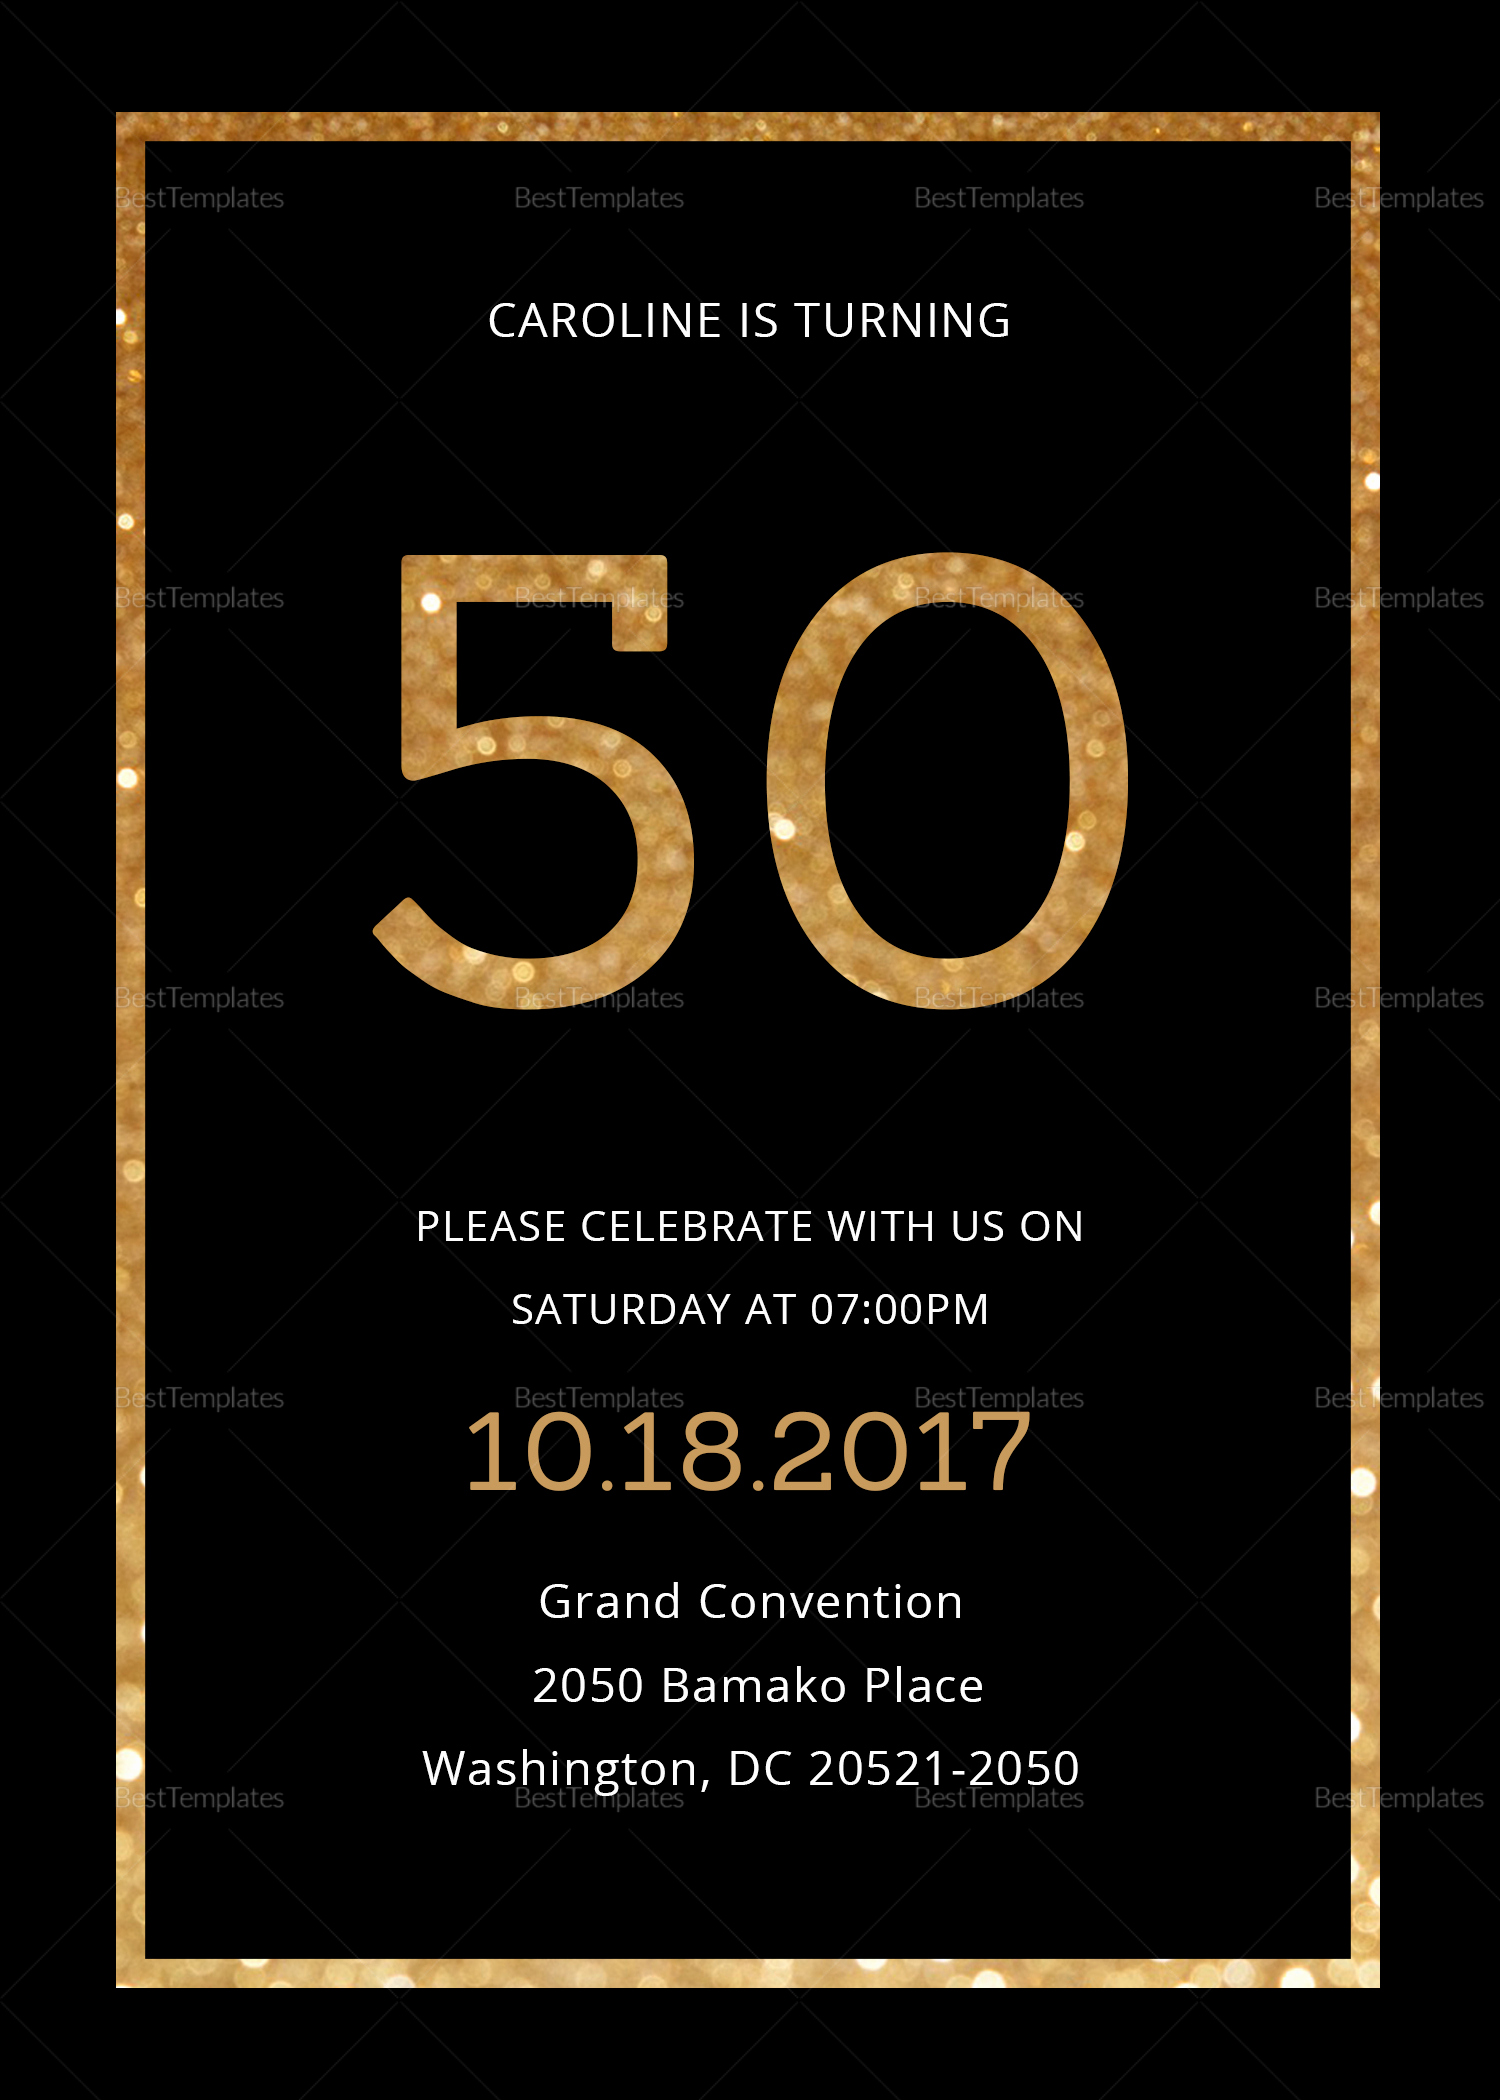 50th Birthday Invitation Templates Awesome Elegant Black and Gold 50th Birthday Invitation Design